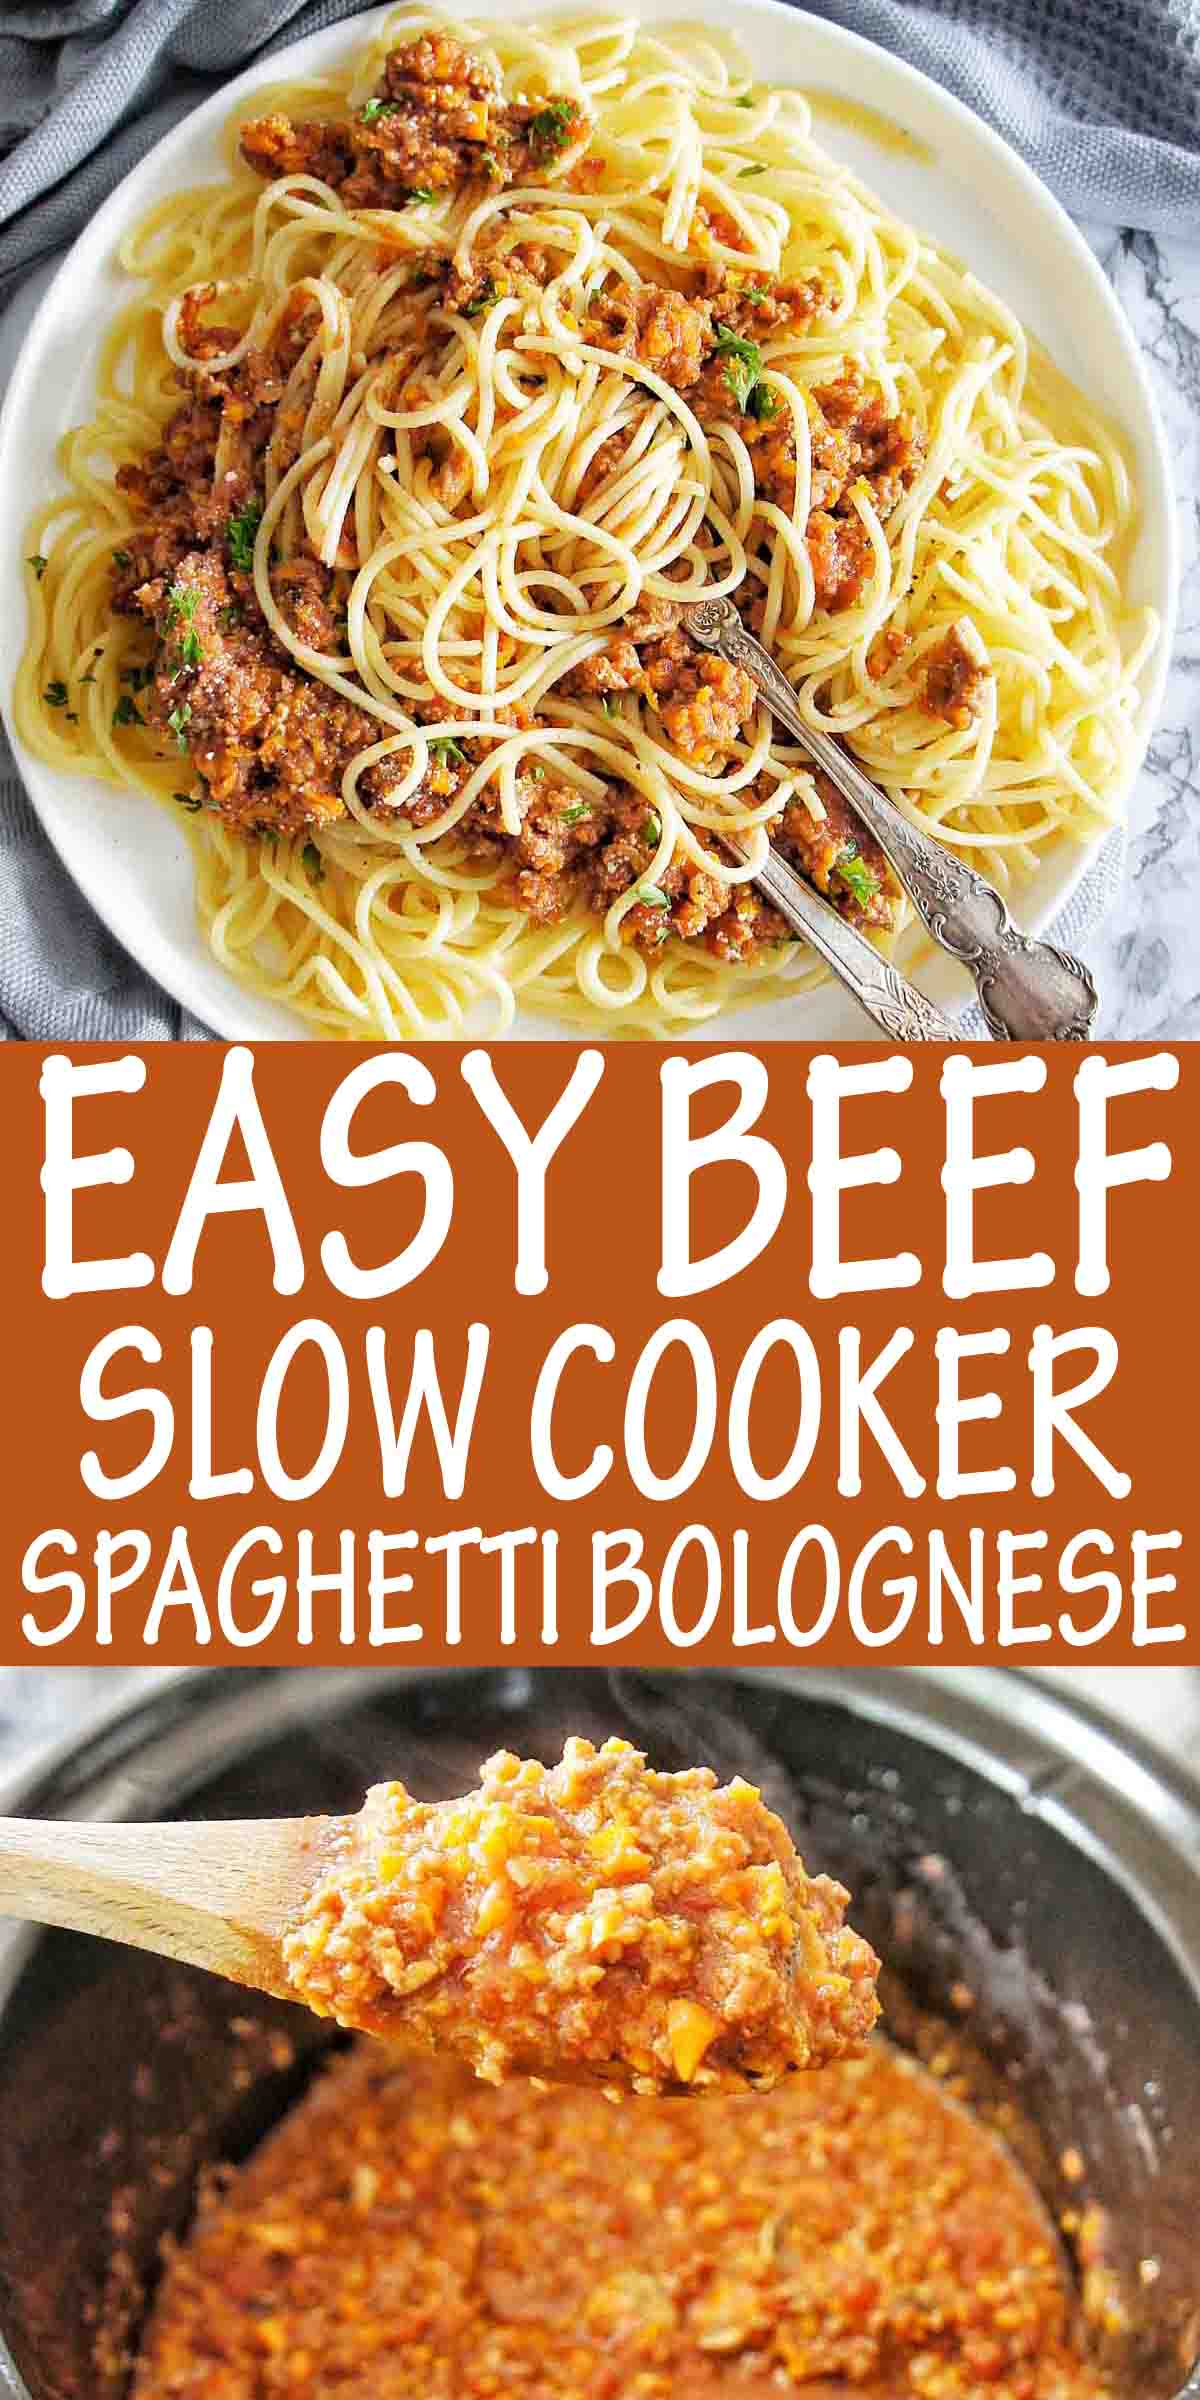 Easy Beef Slow Cooker Spaghetti Bolognese